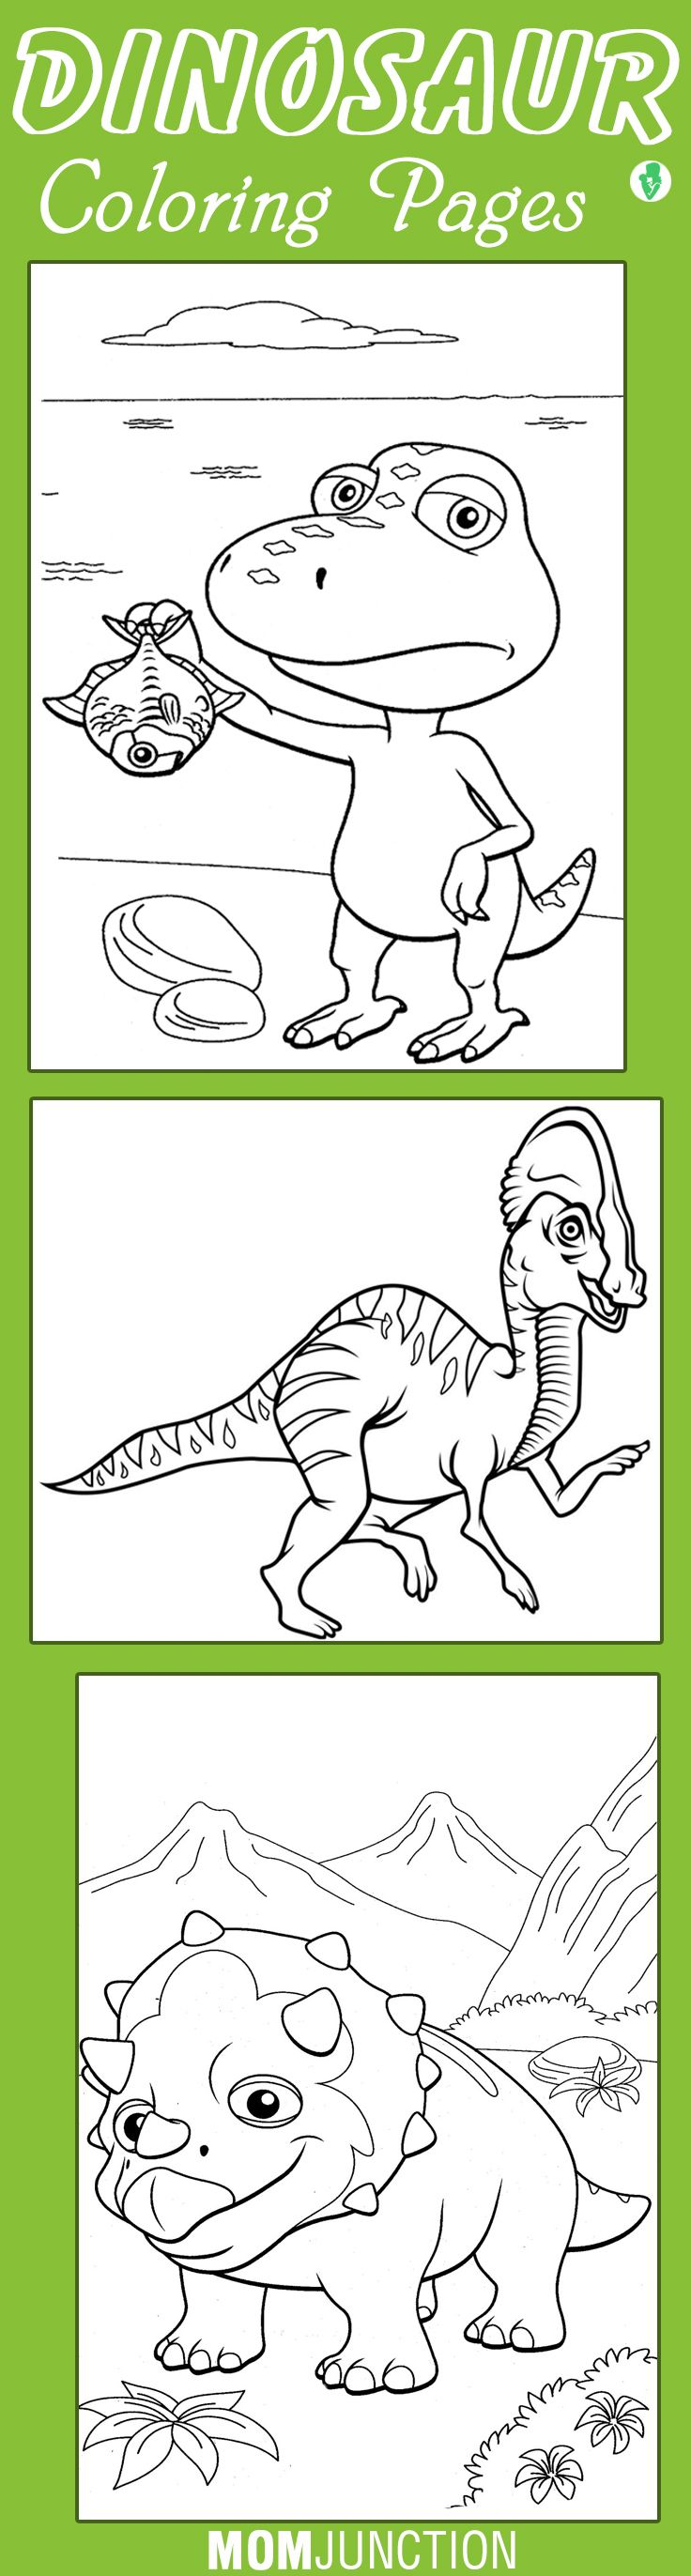 best 25 dinosaur train ideas on pinterest dinosaur train party